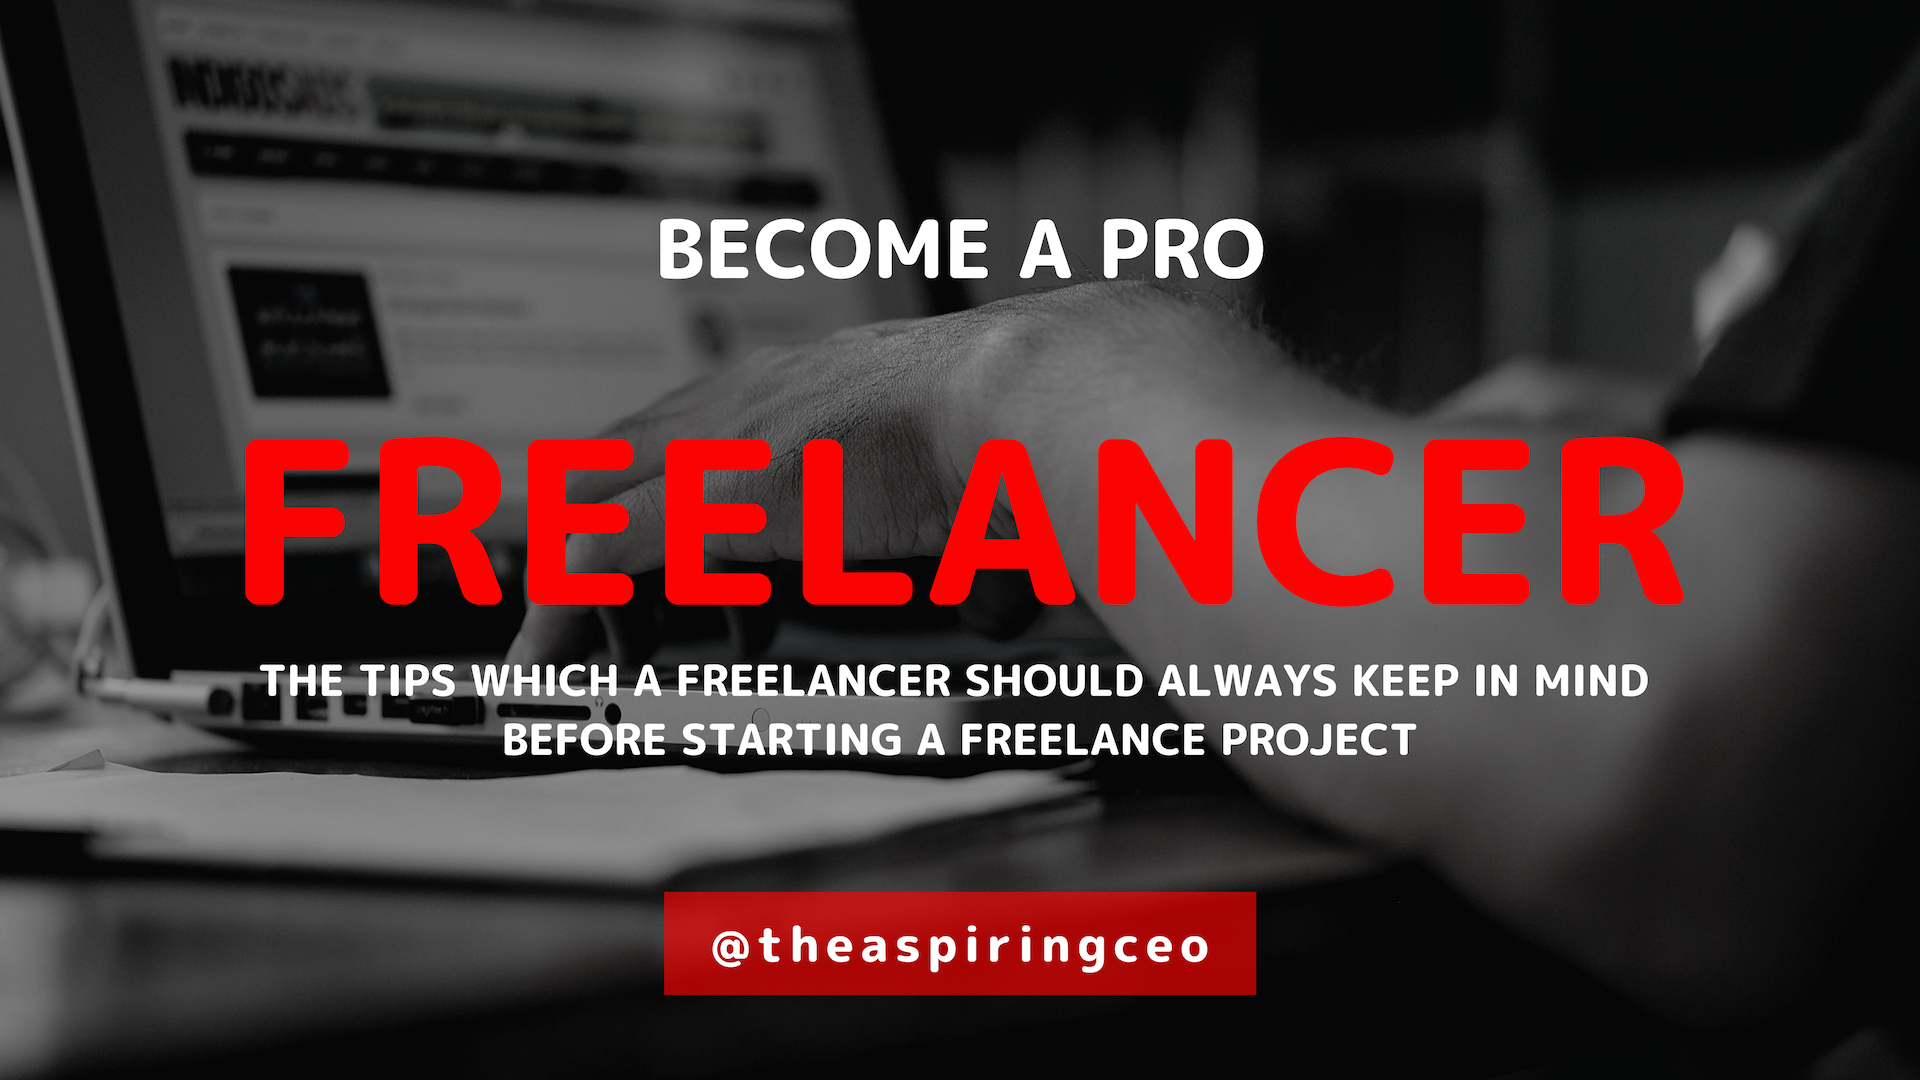 IMPORTANT TIPS FREELANCER SHOULD REMEMBER WHILE STARTING HOME BASED WORK